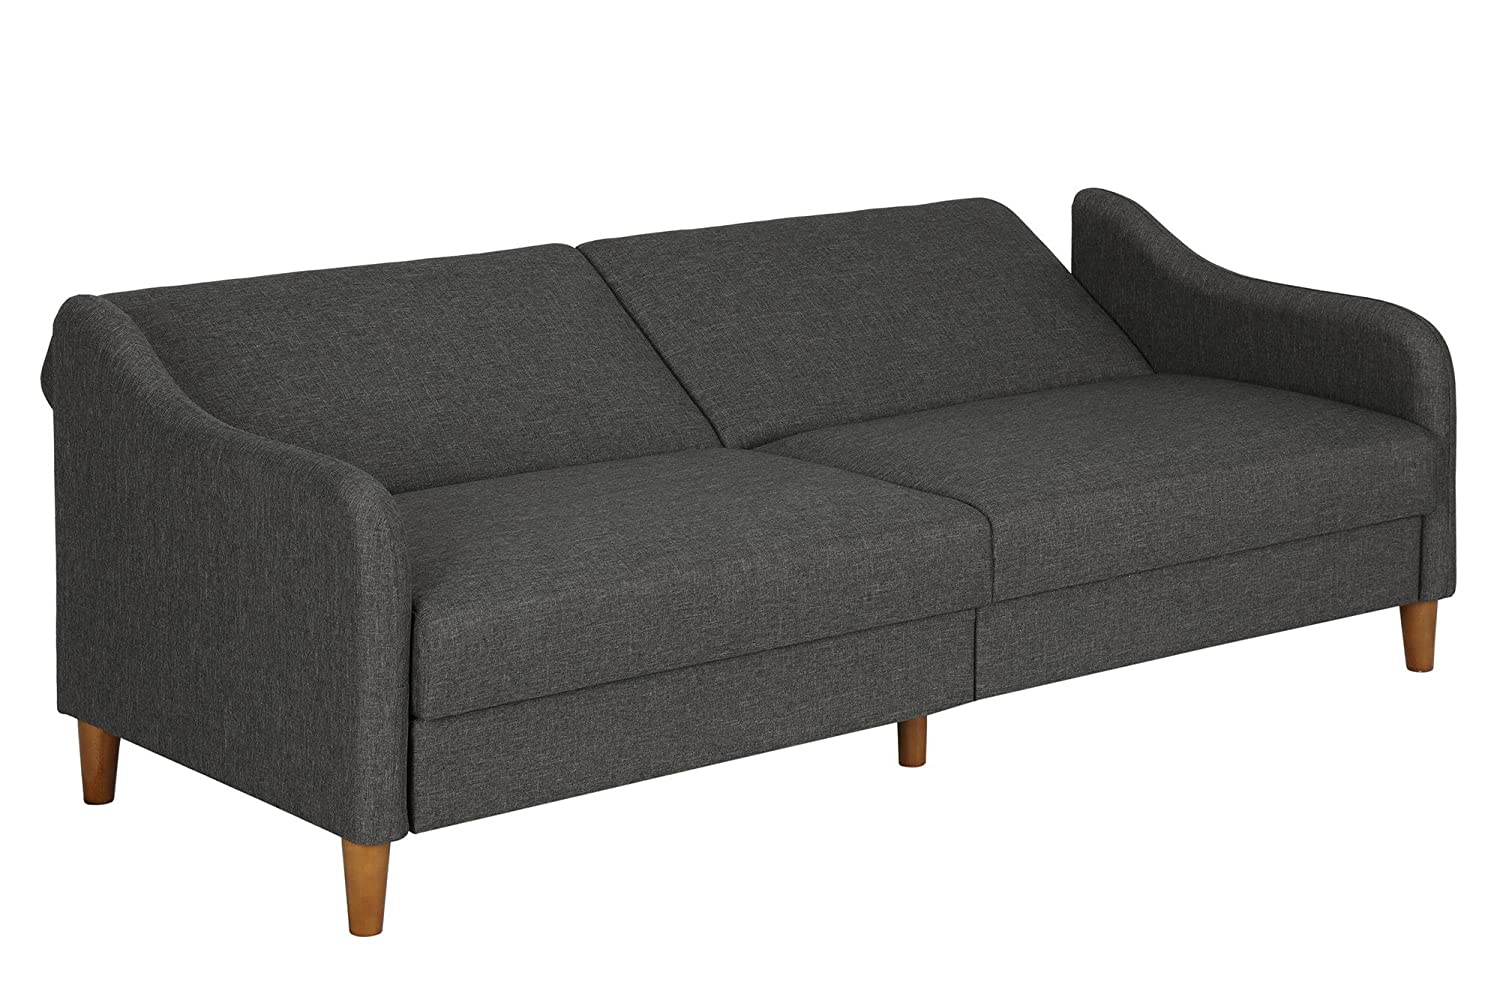 tulsa international name futon product page futons index set bismark primo by id